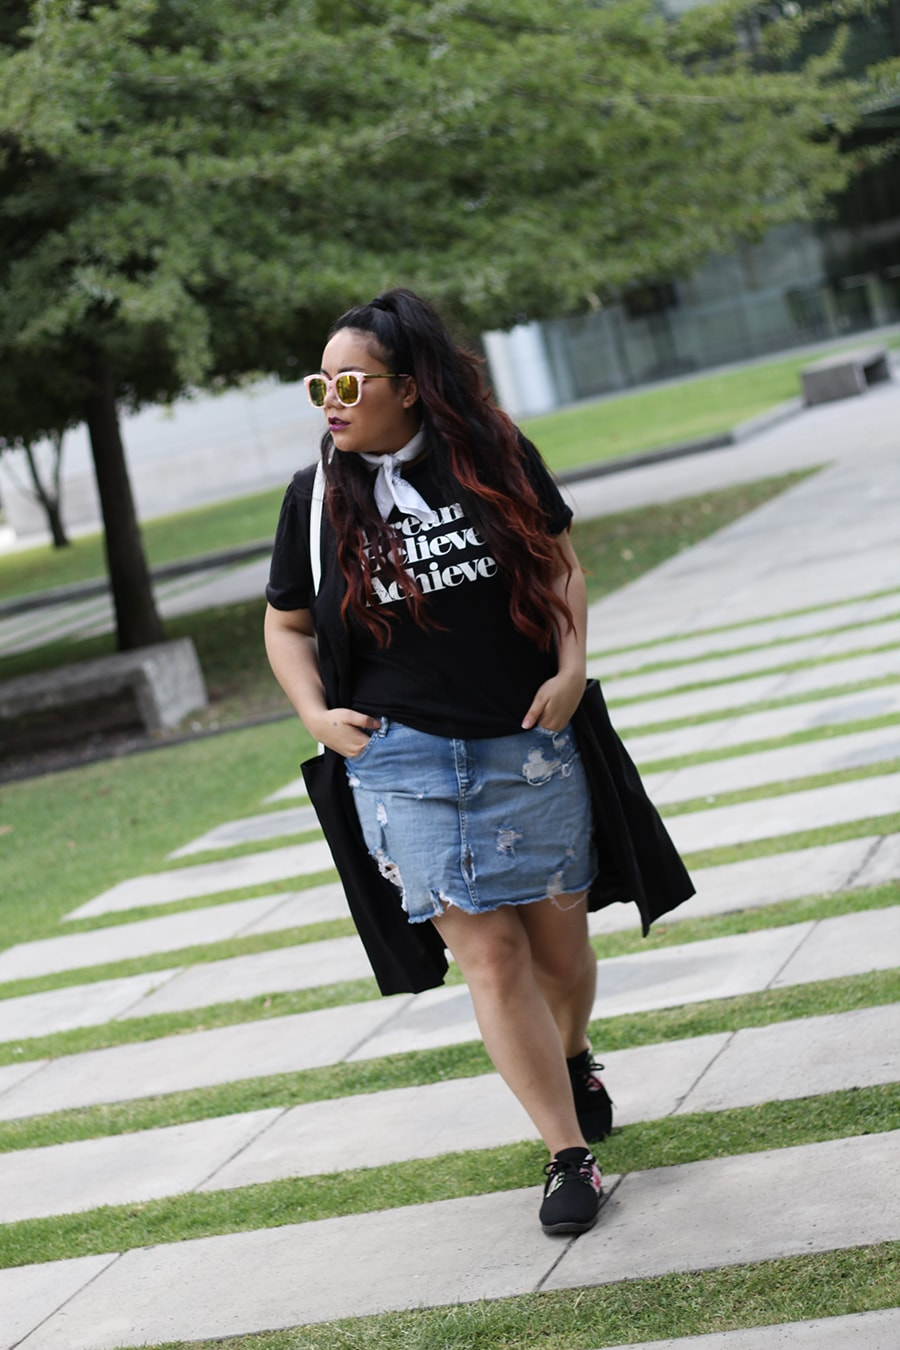 Graphic tee and tropical sneakers festival season outfit inspiration curvy